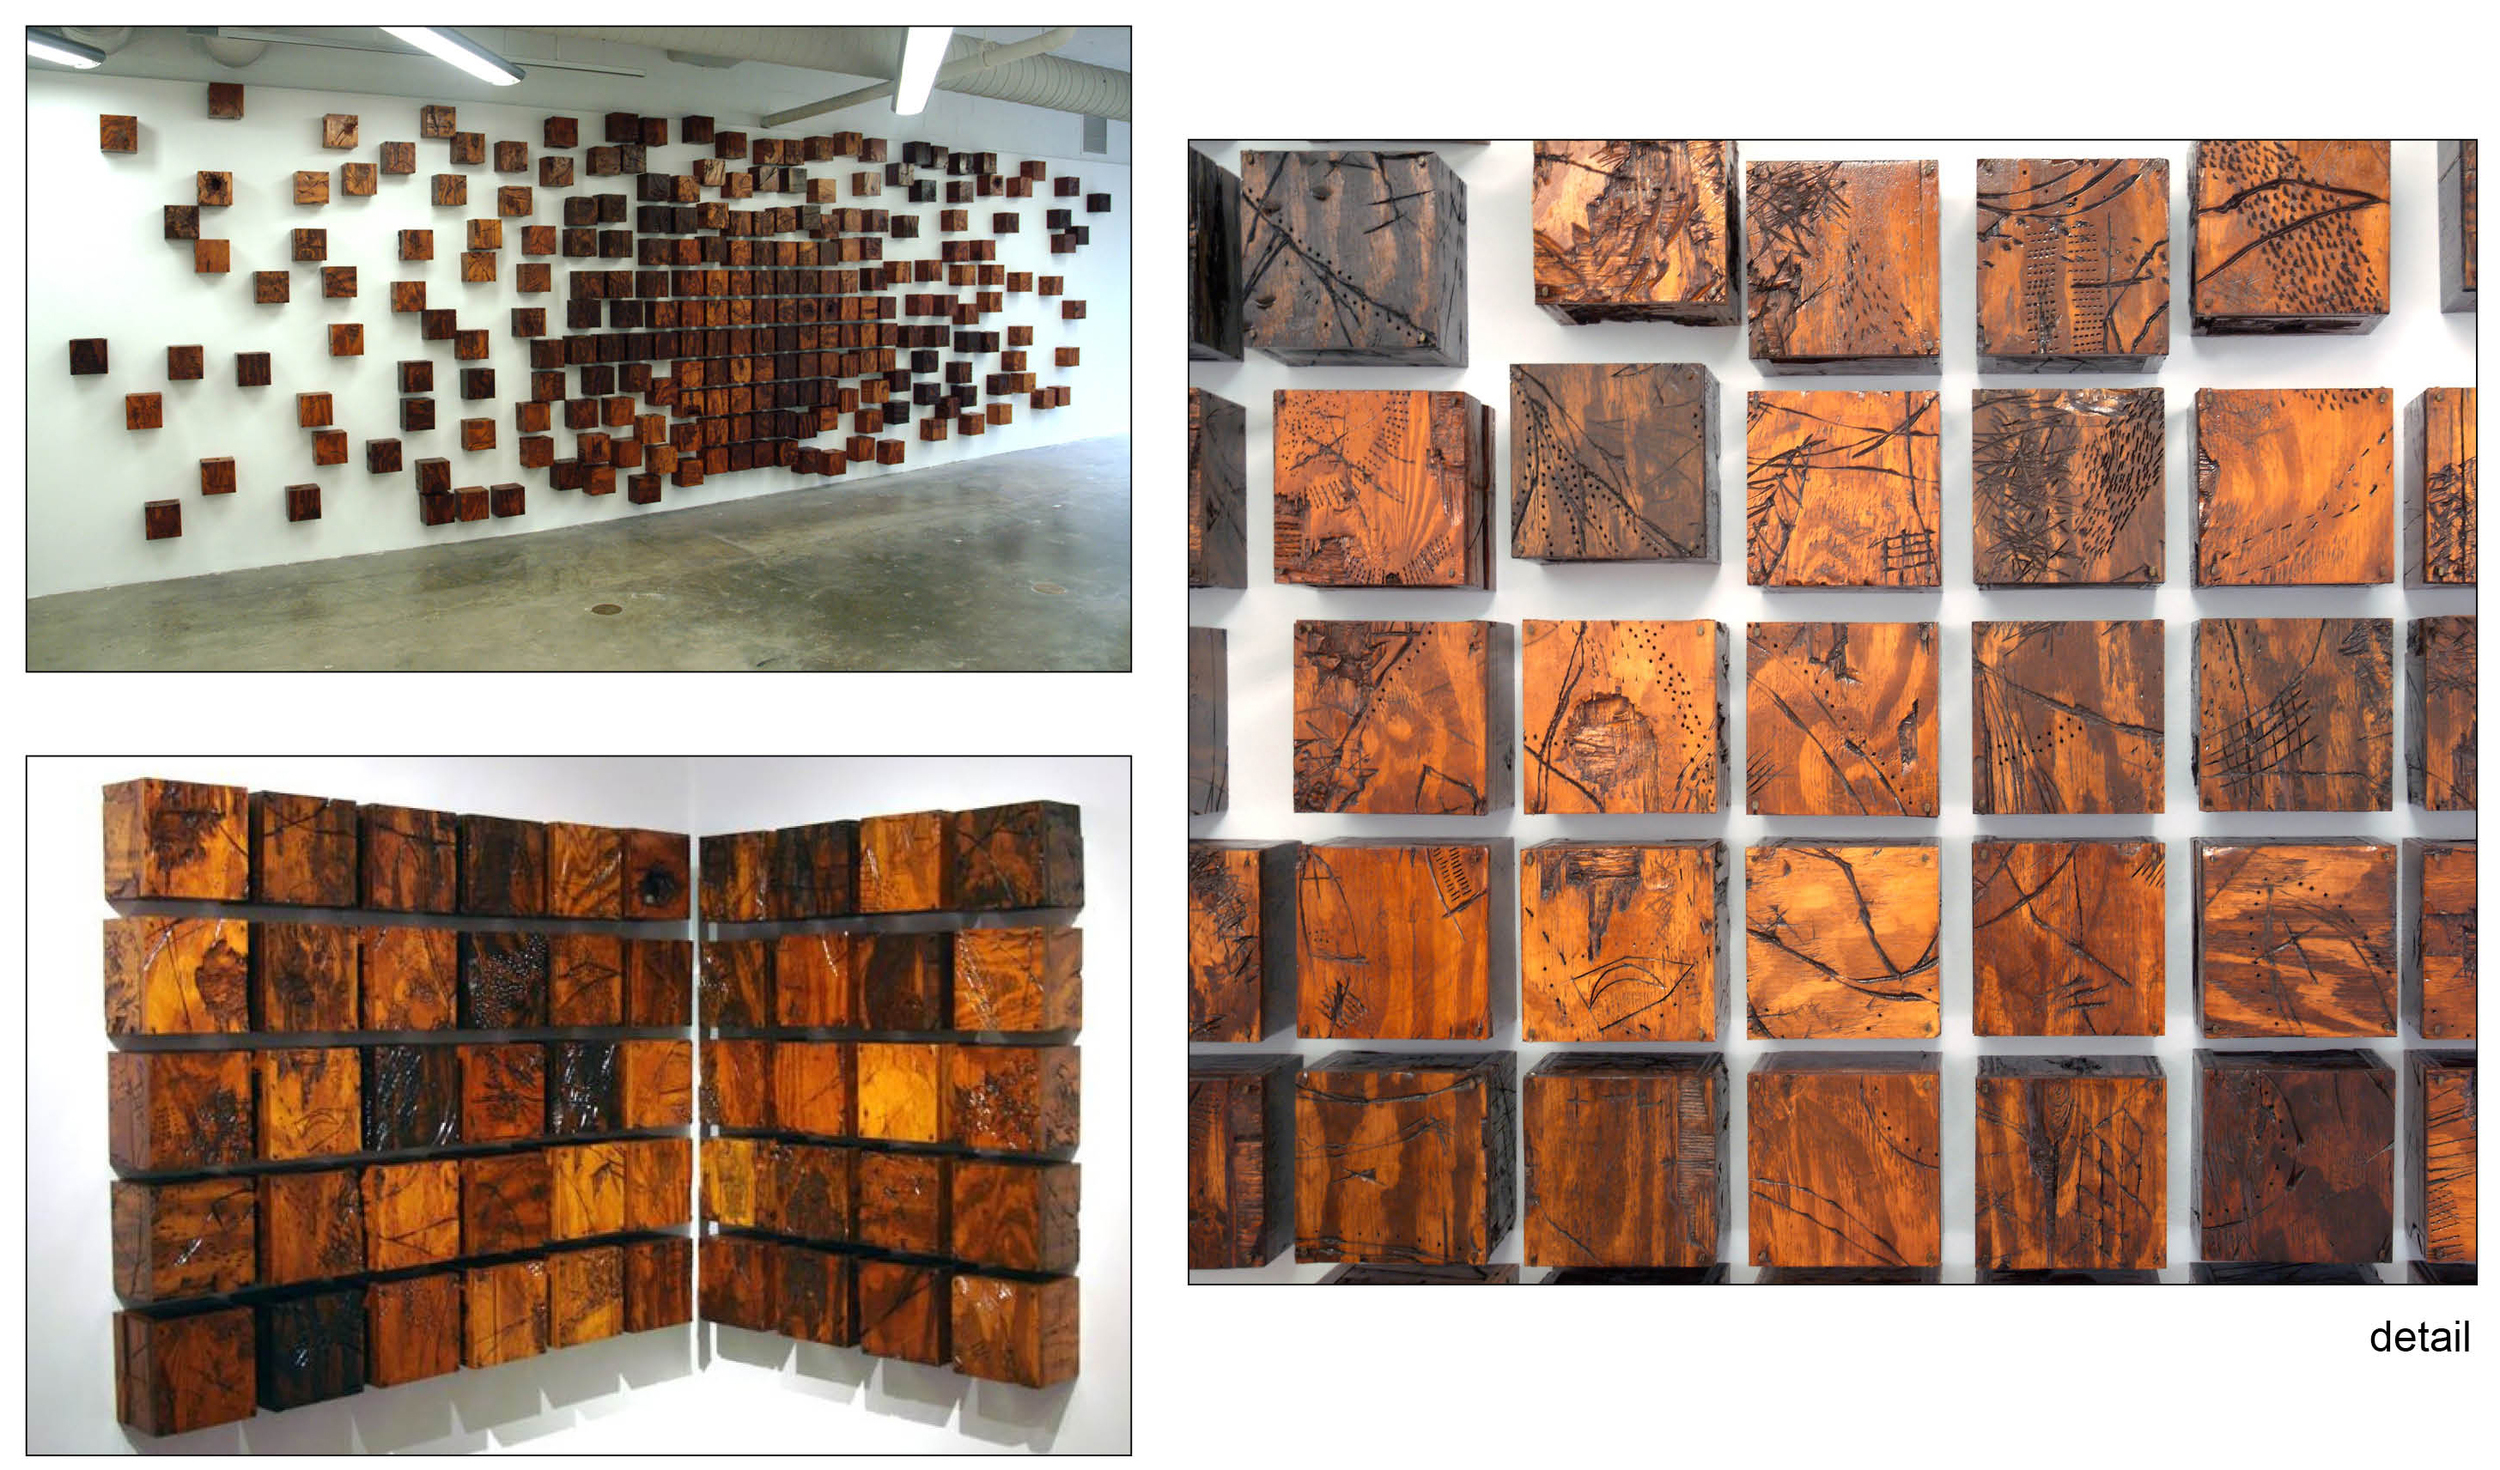 Fluctuations - Formation I & II  size varies based on formation  oil paint, shellac, plywood, masonry nails  2012